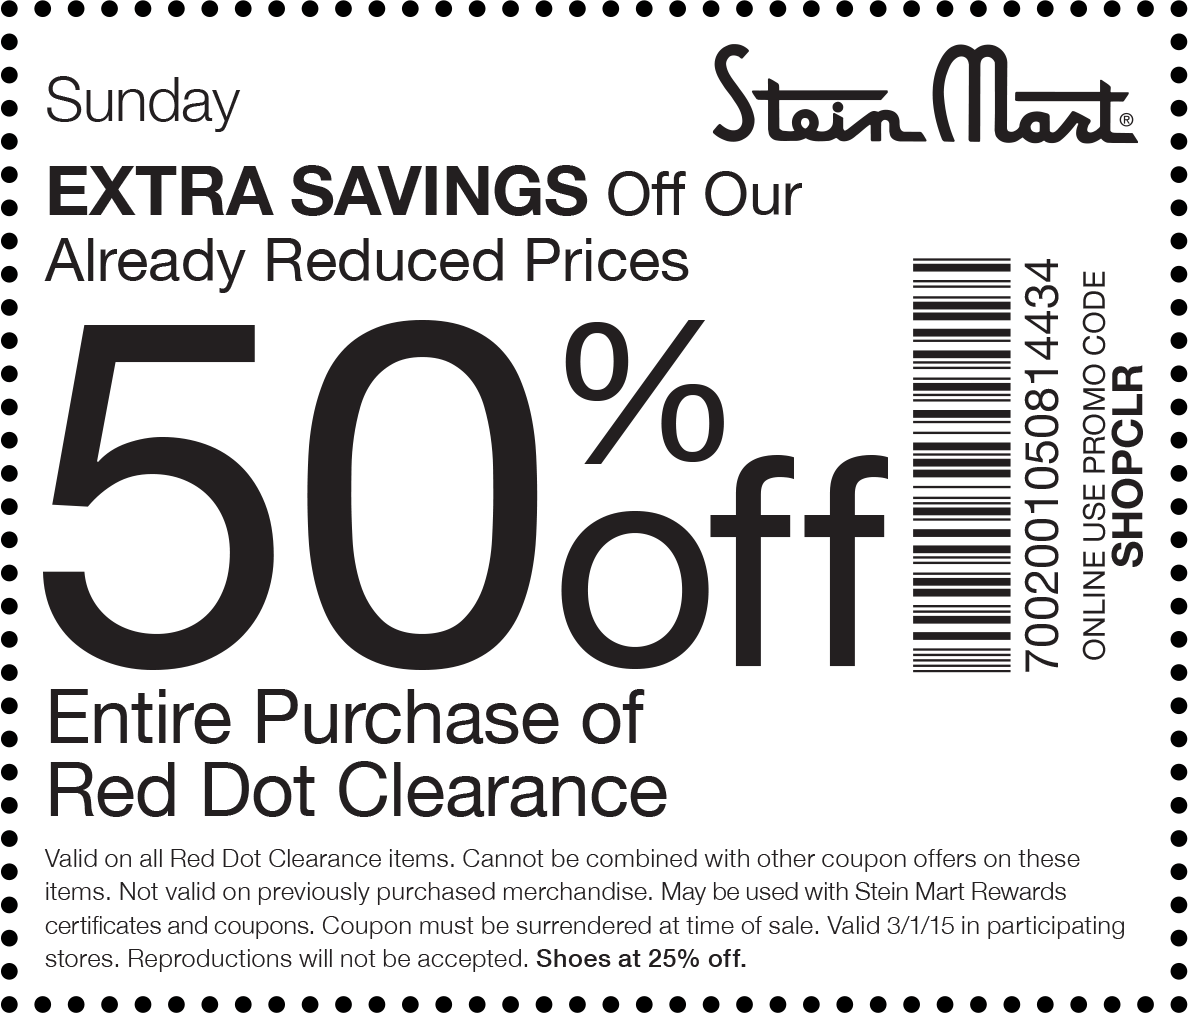 graphic about Steinmart Coupons Printable identify Pinned March 1st: Excess 50% off purple dot clearance these days at